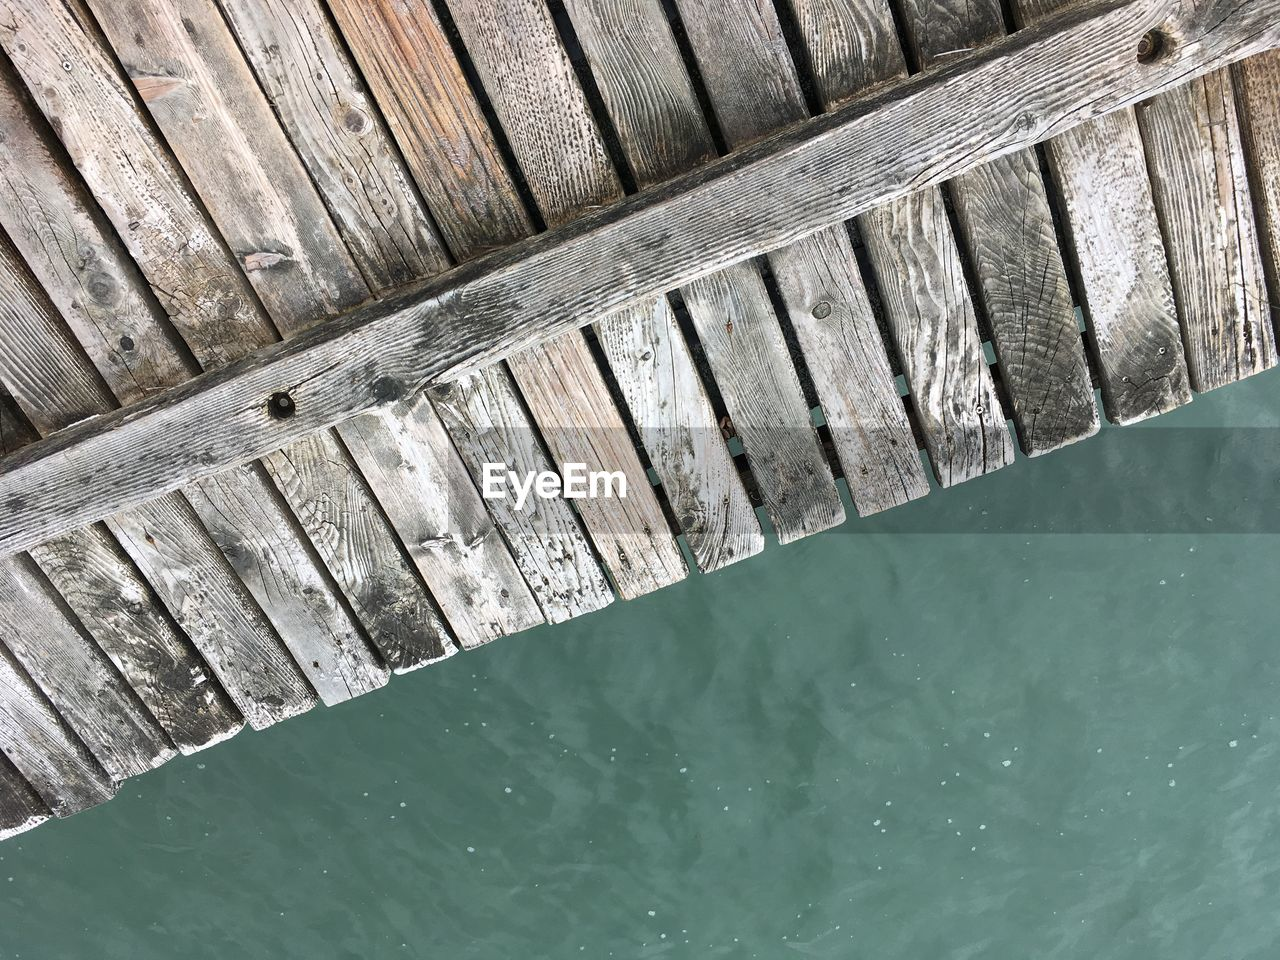 water, wood - material, day, outdoors, high angle view, no people, nature, sea, built structure, architecture